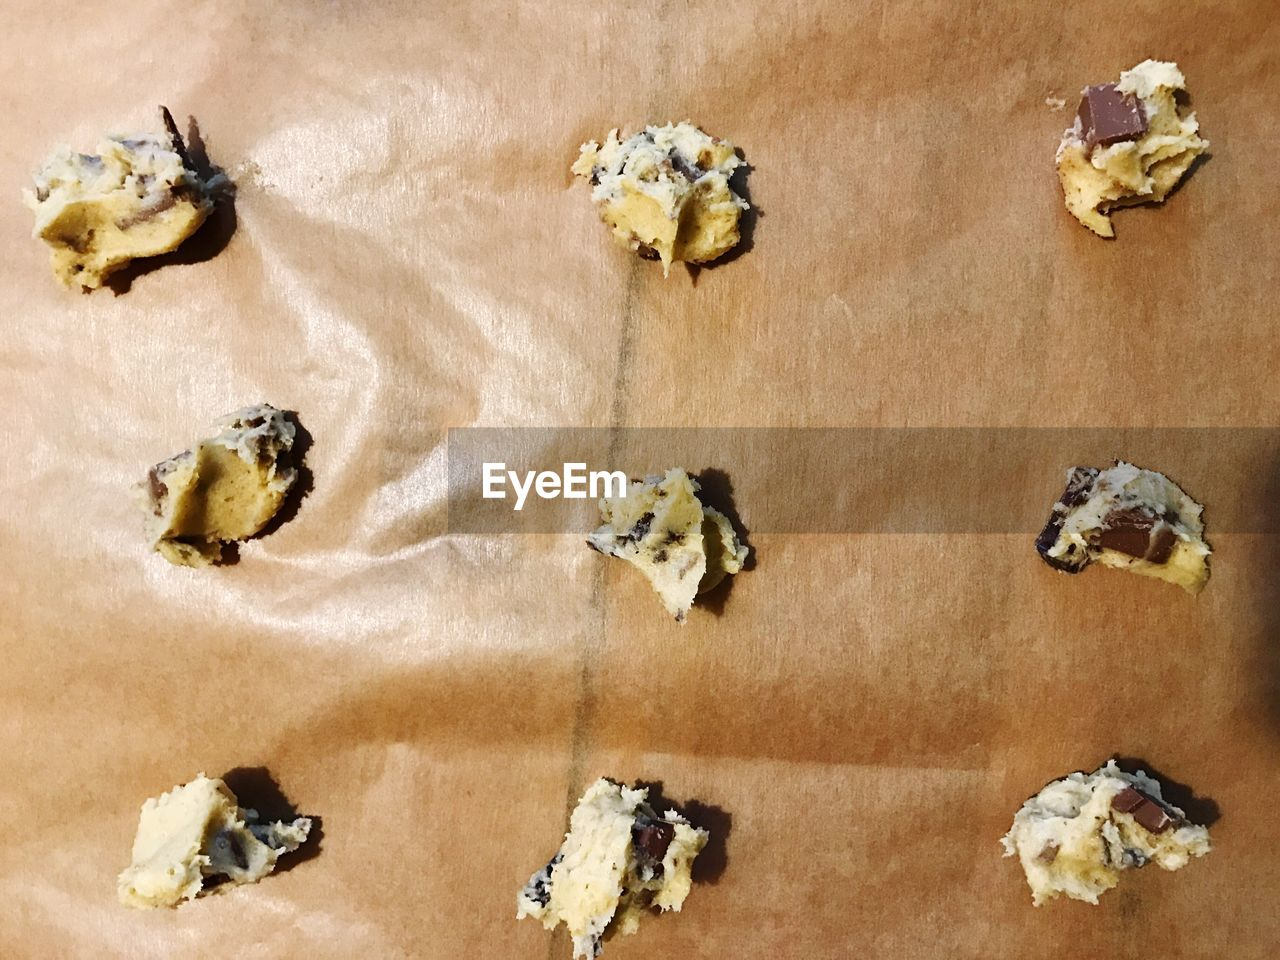 High Angle View Of Chocolate Chip Cookies Arranged On Paper